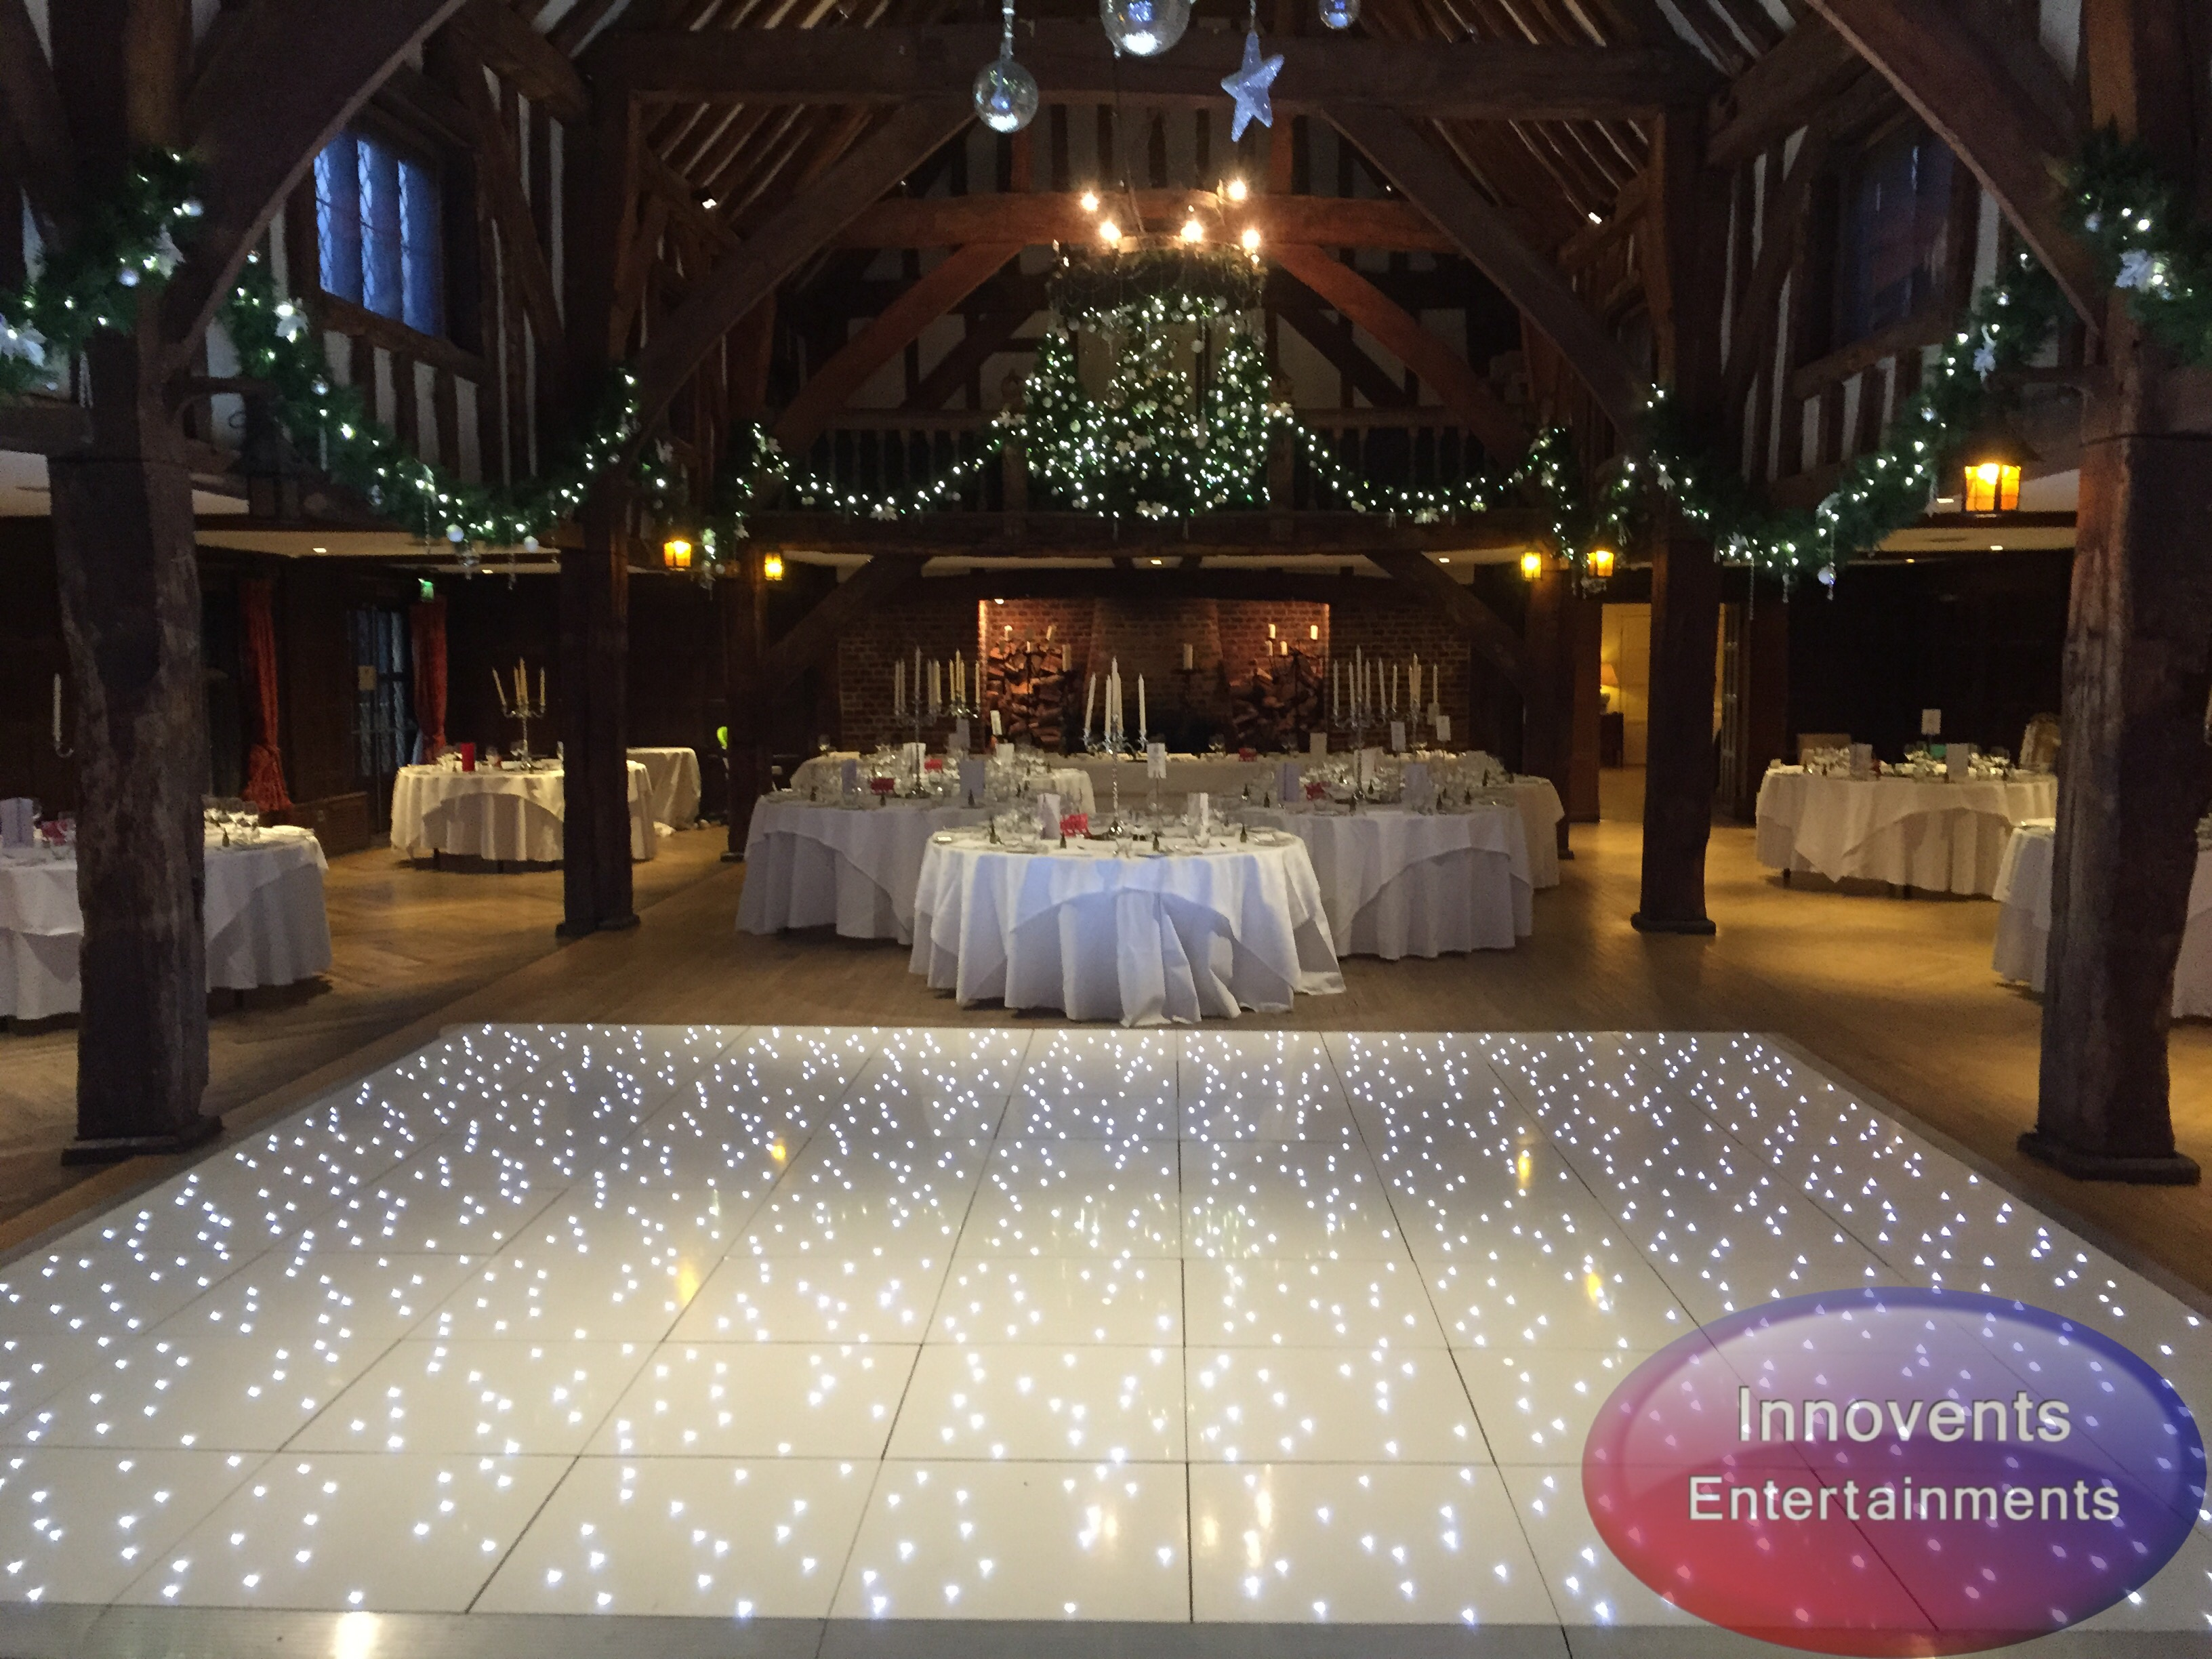 White led dance floor - Great Fosters